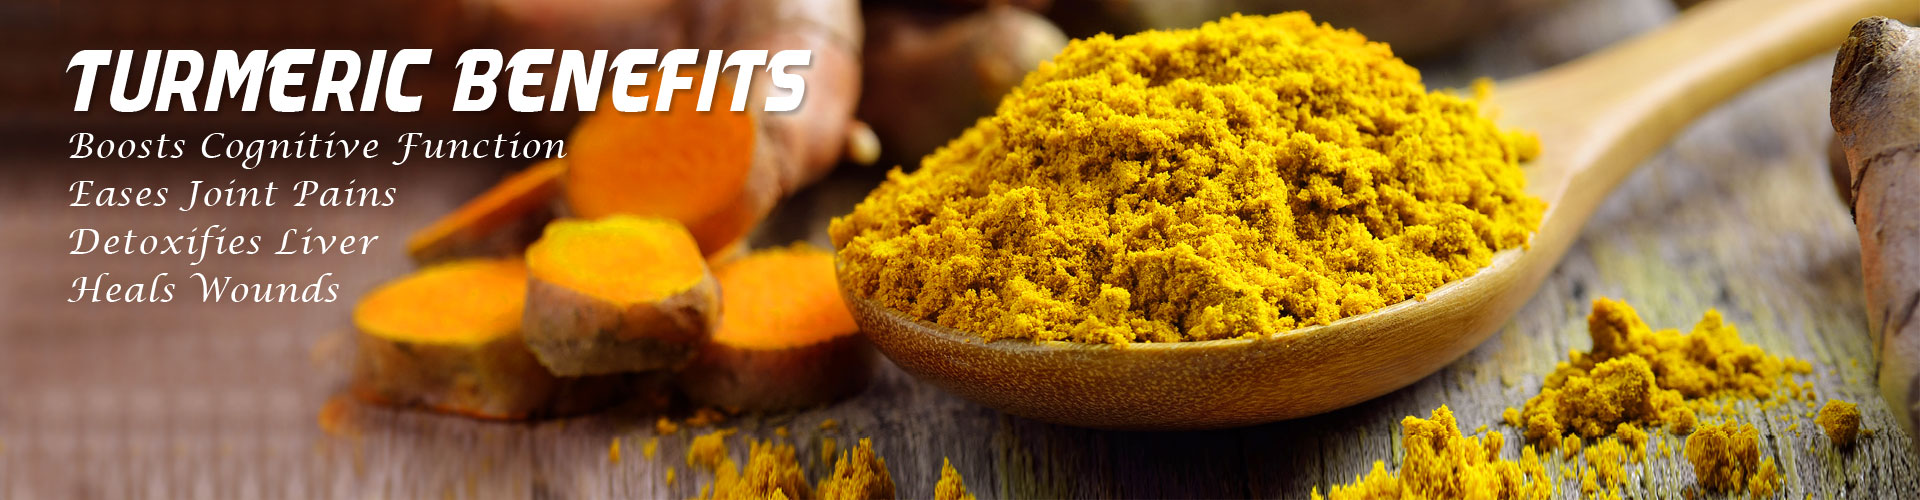 Turmeric Benefits - Boosts Cognitive Function, Eases Joint Pains, Detoxifies Liver, Heals Wounds